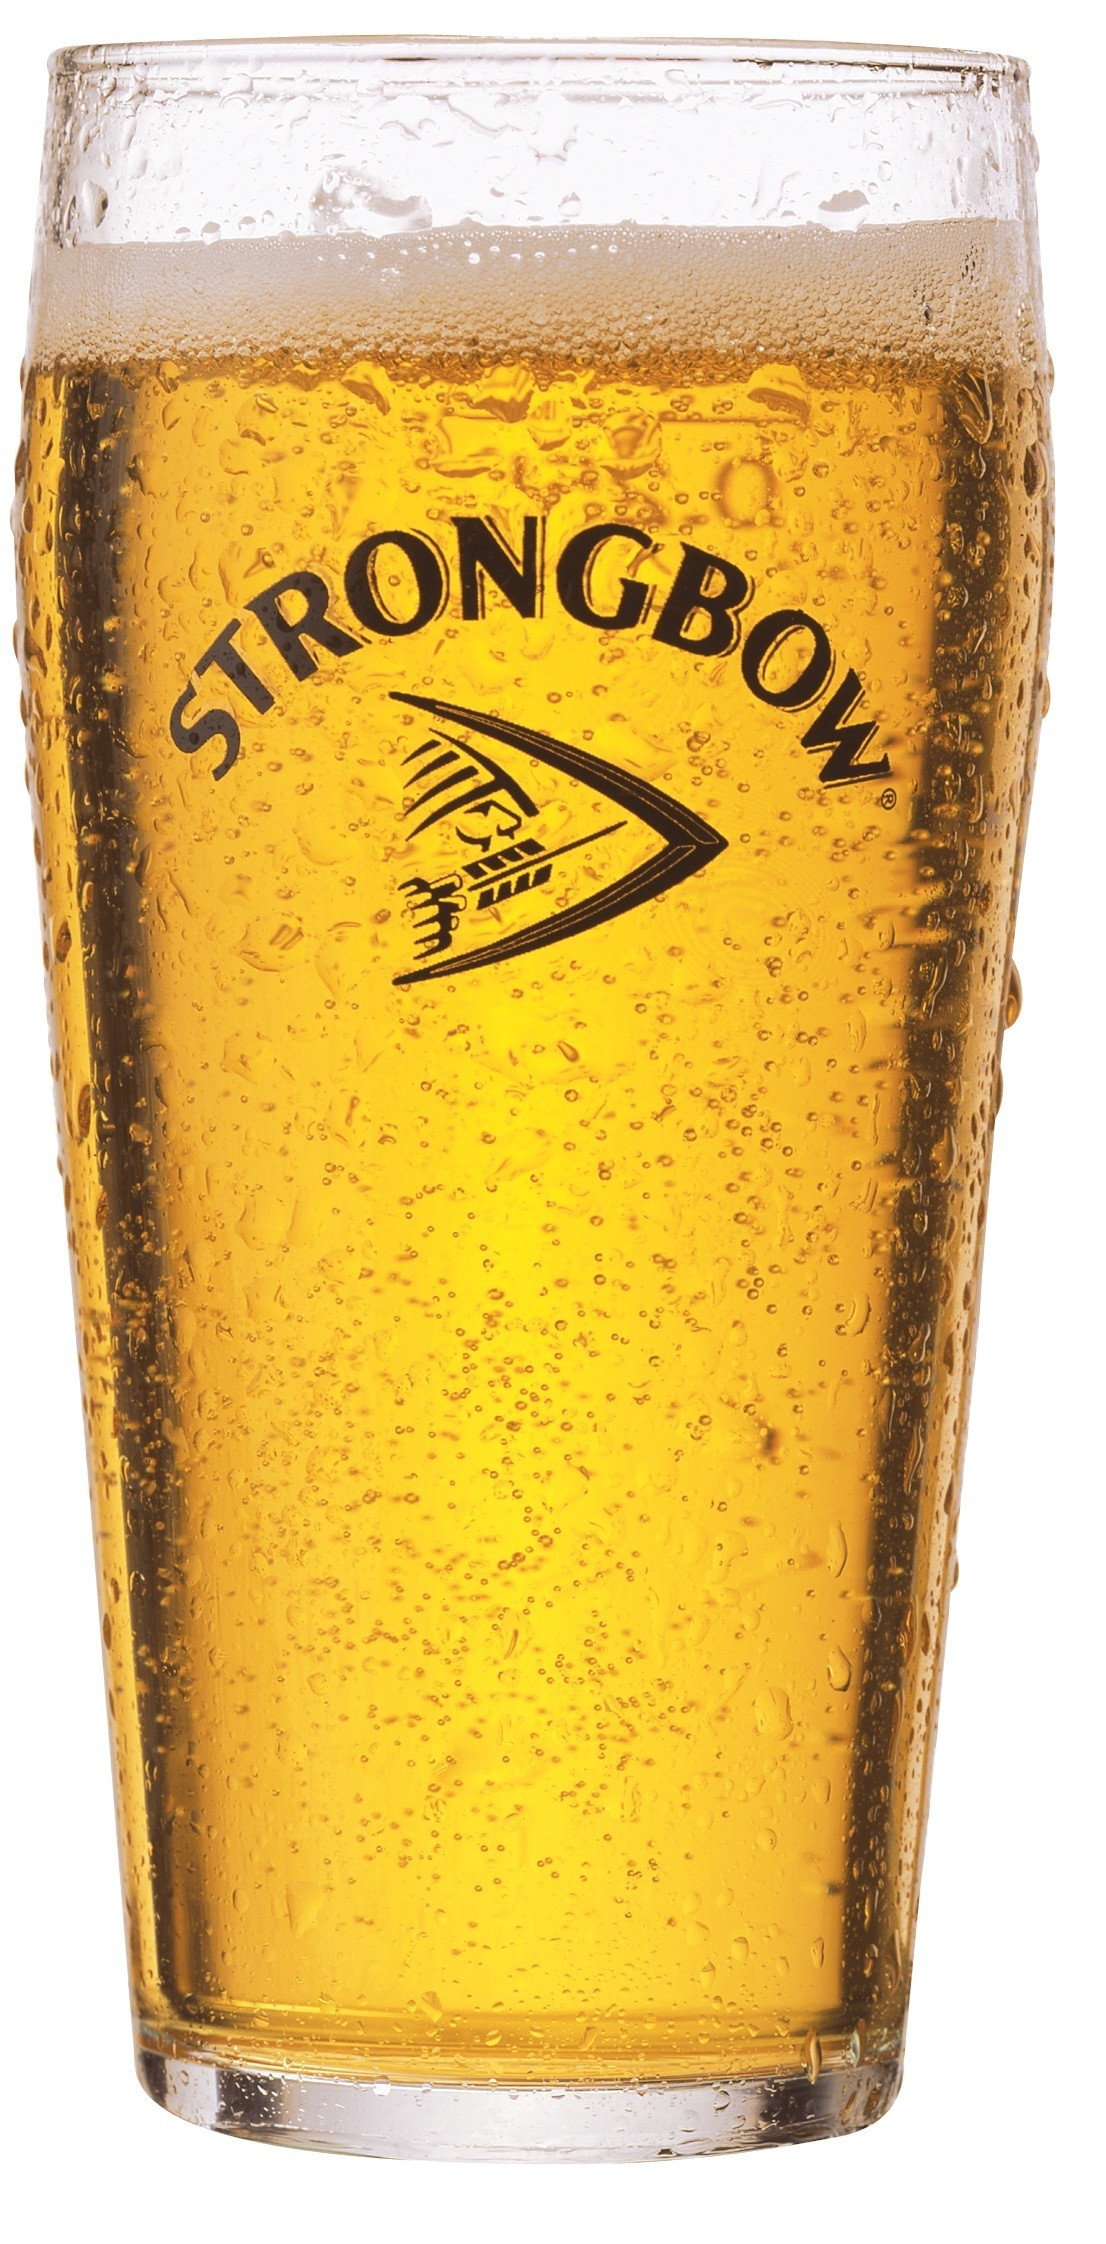 Strongbow Apple Cider An Artful Use Of Apples